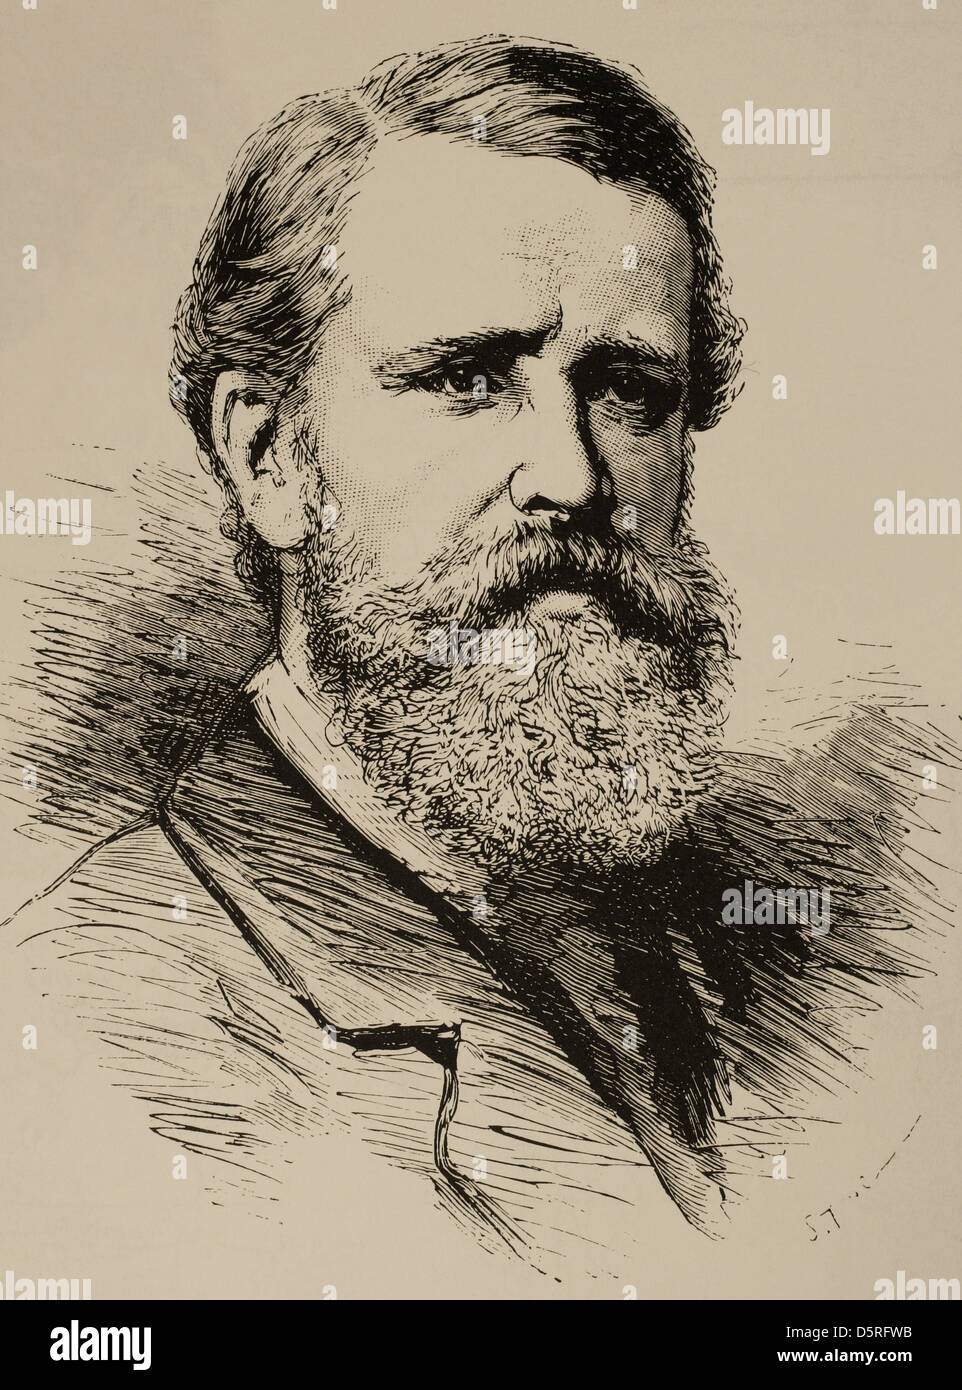 Verney Lovett Cameron (1844-1894). British explorer. Engraving in The Illustration. Universal Magazine, 1876. - Stock Image